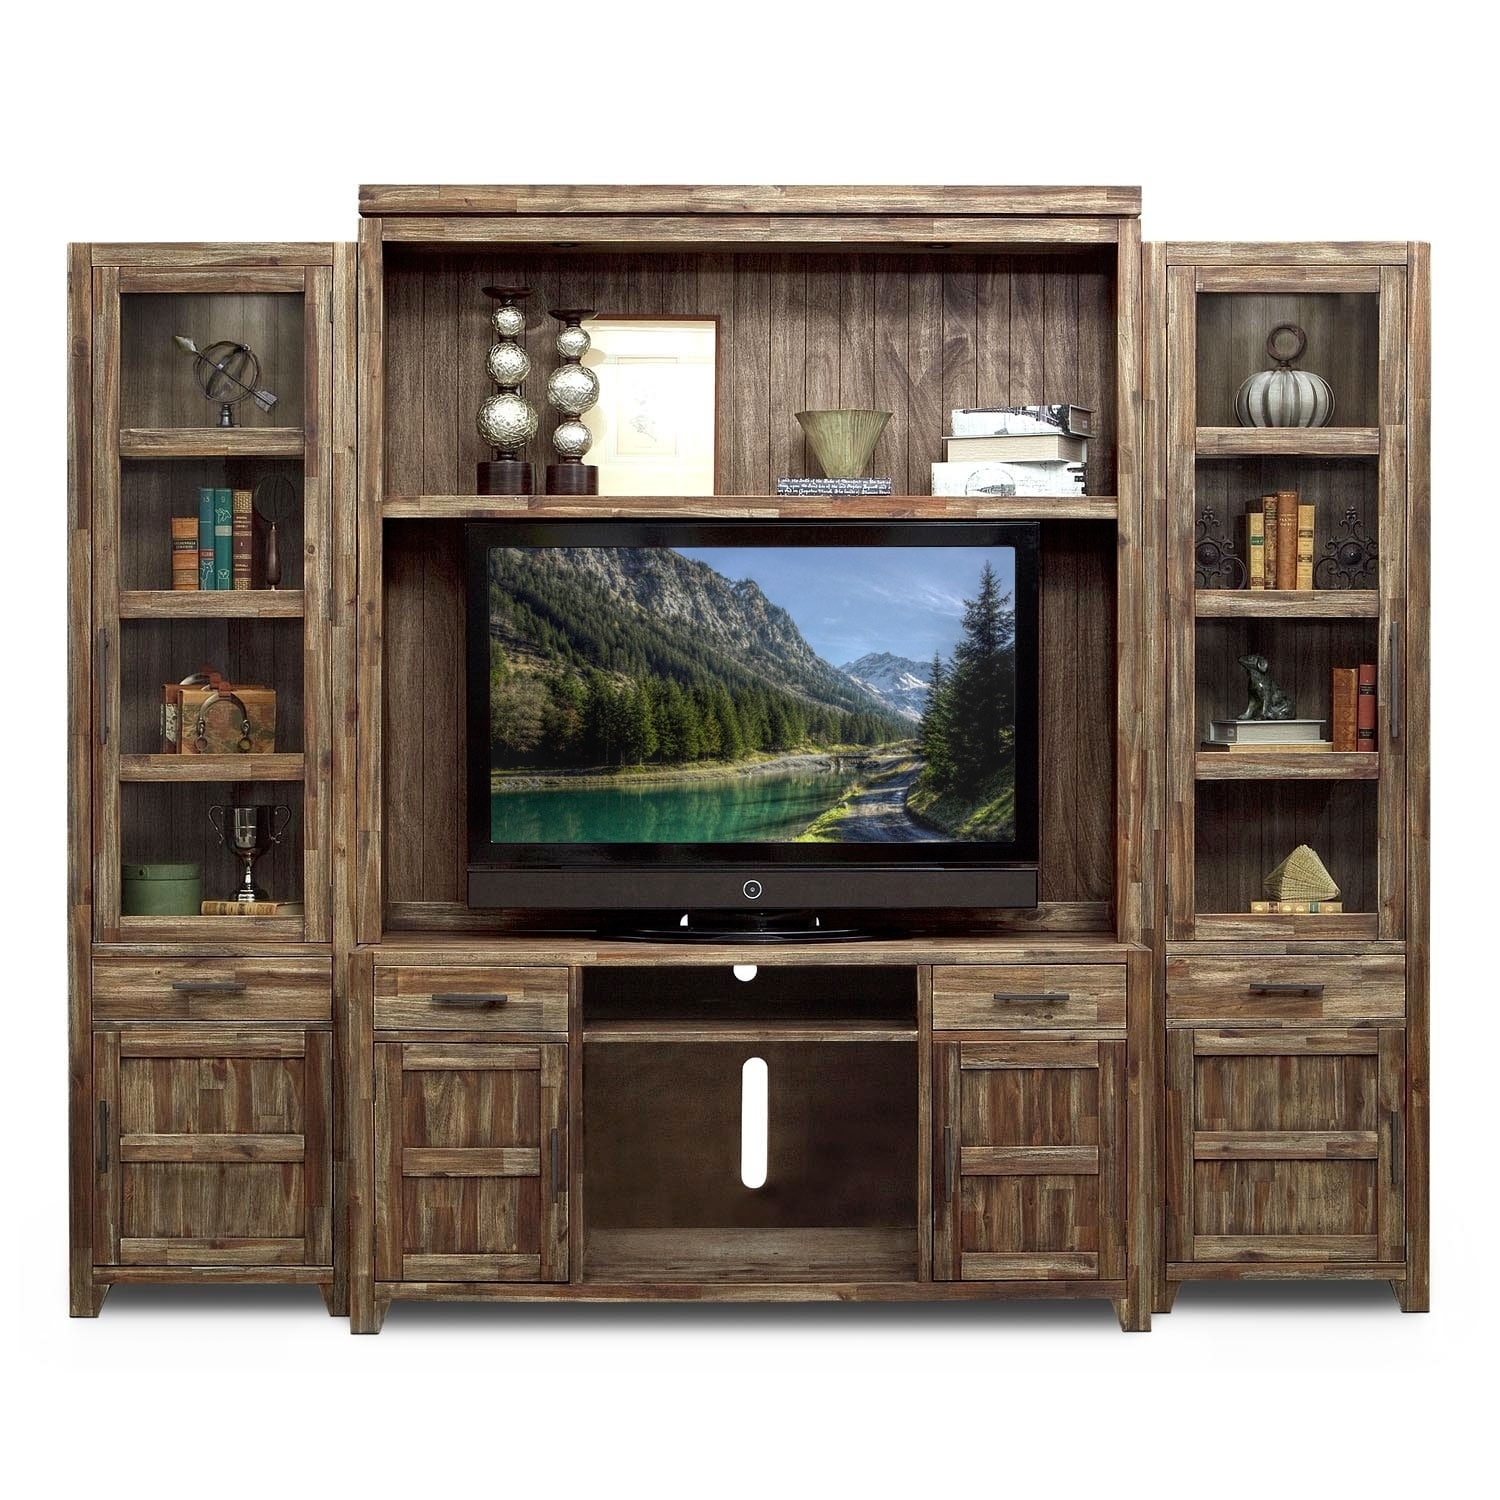 Living Room Entertainment Furniture: Brentwood 4 Pc. Entertainment Wall Unit